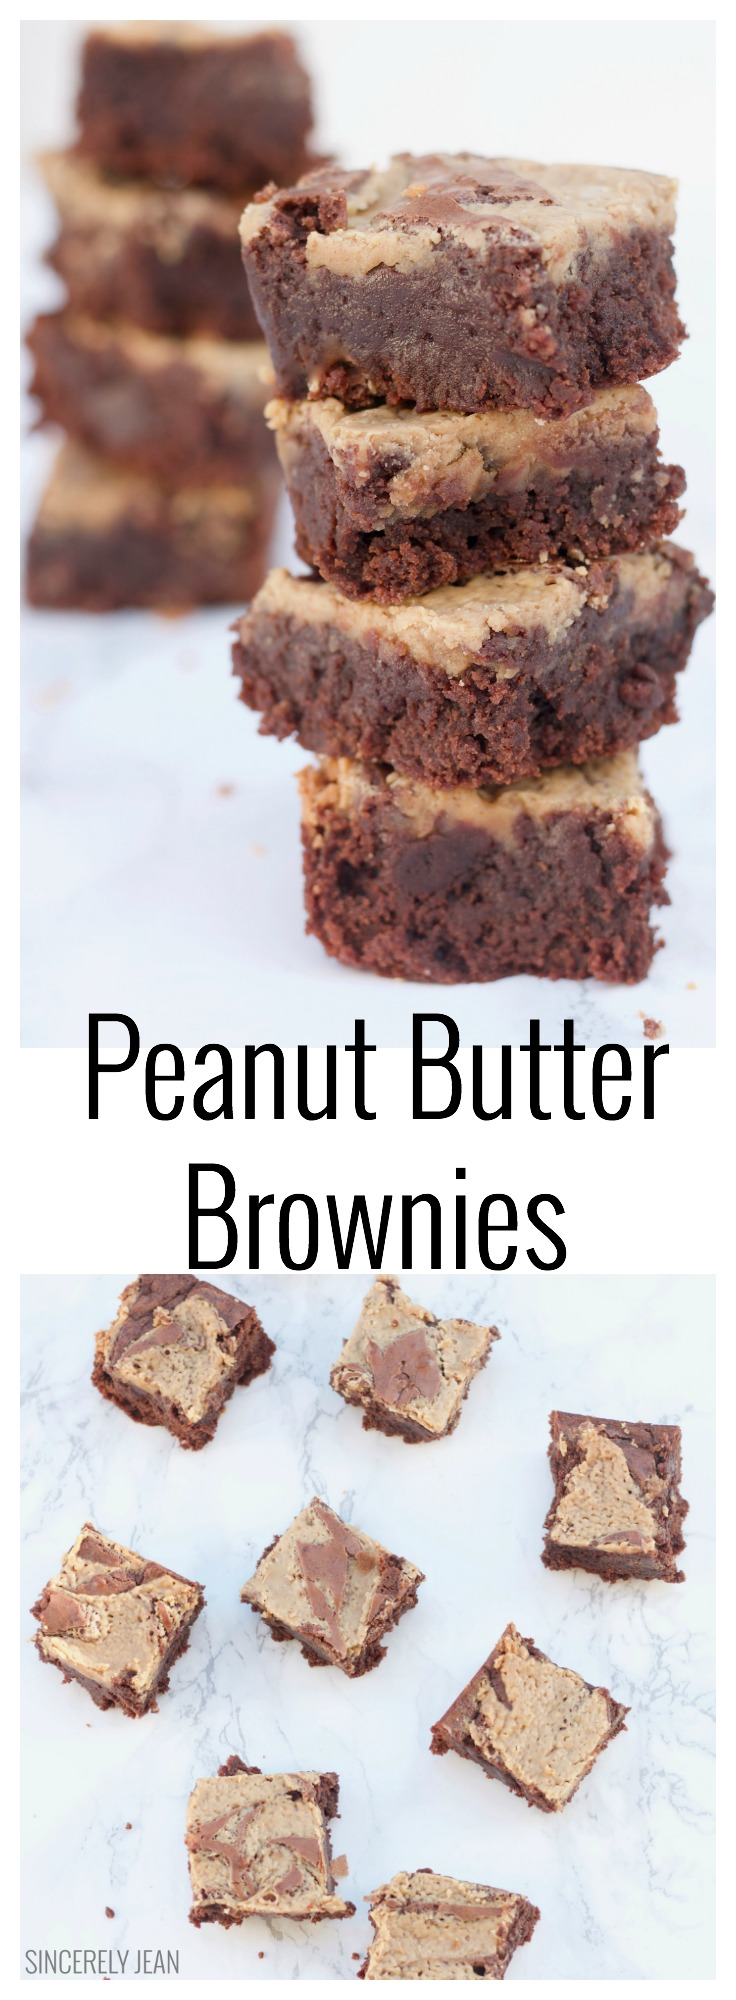 Peanut Butter Brownies - homemade - easy - simple - chocolate - dessert - recipe